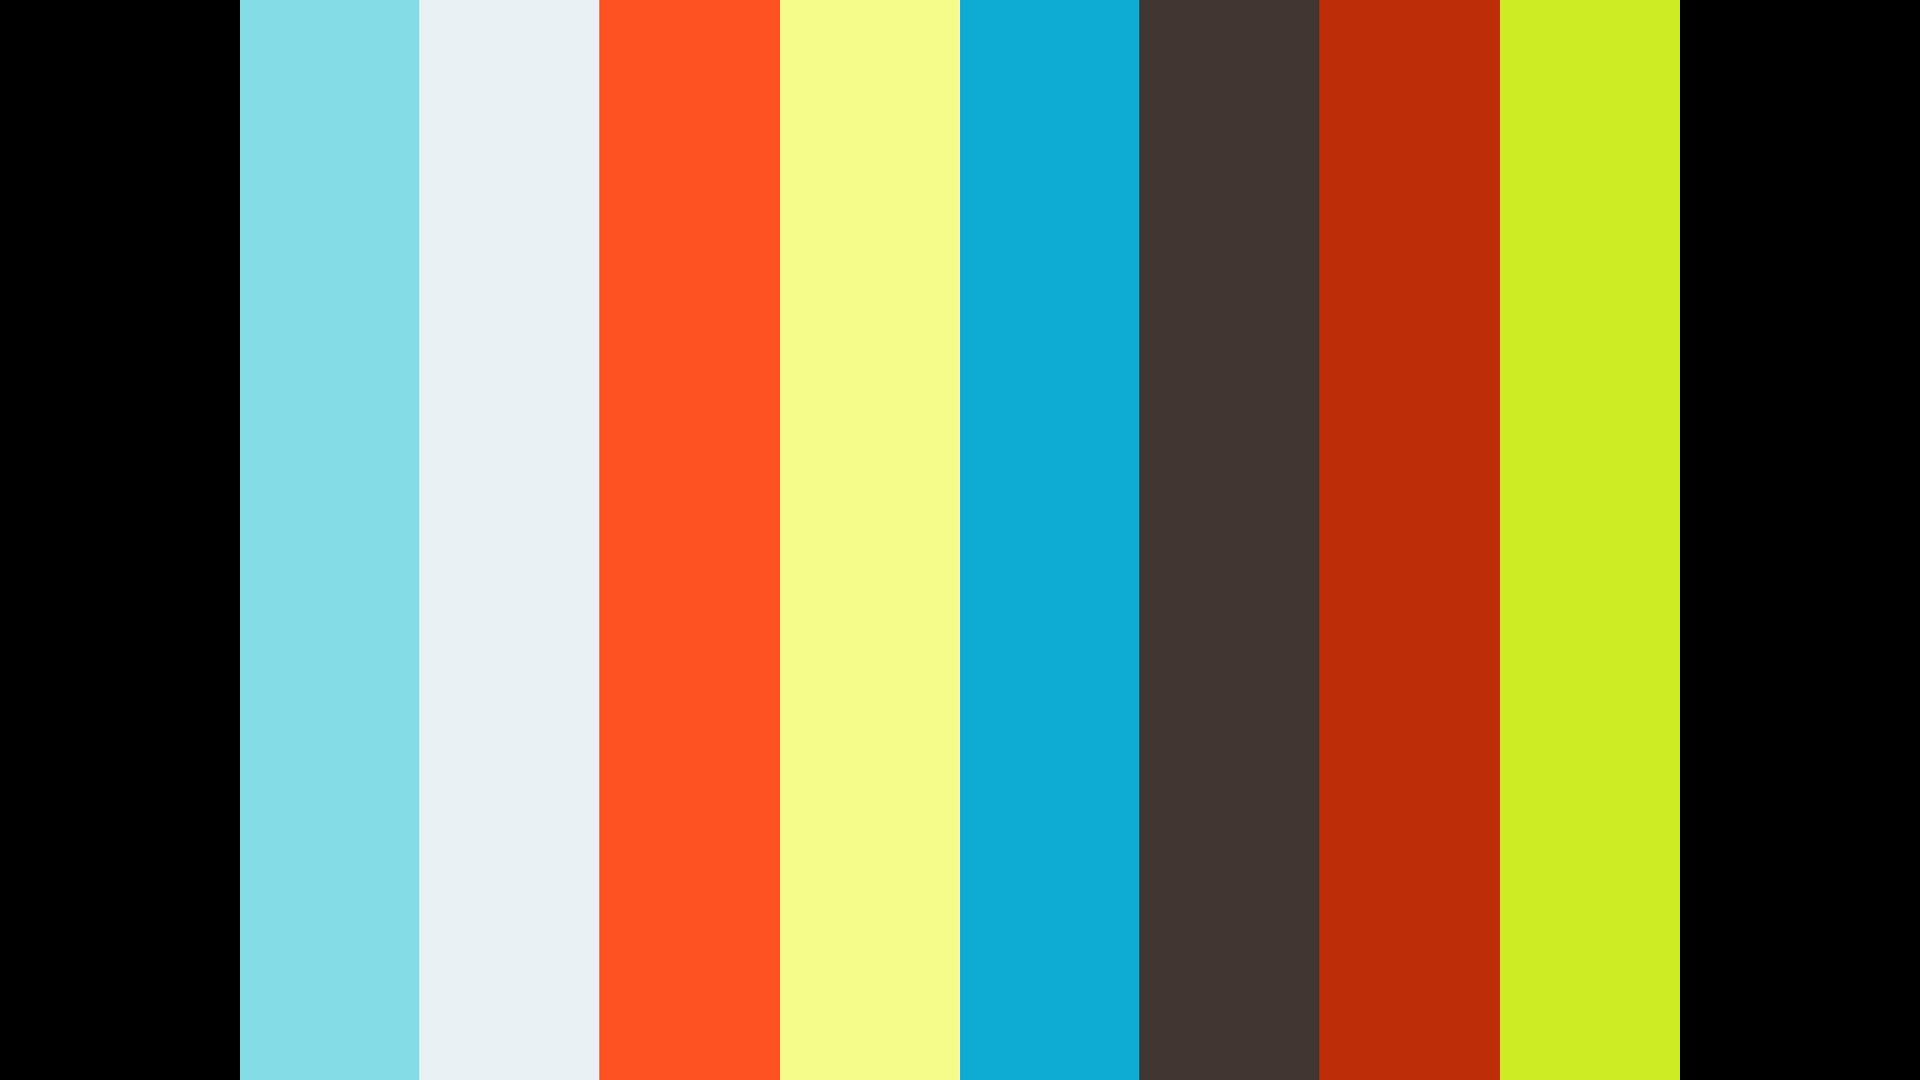 Talk 6 | The Exiled King | Still Waiting for the True King | 2 Samuel 15:13-30